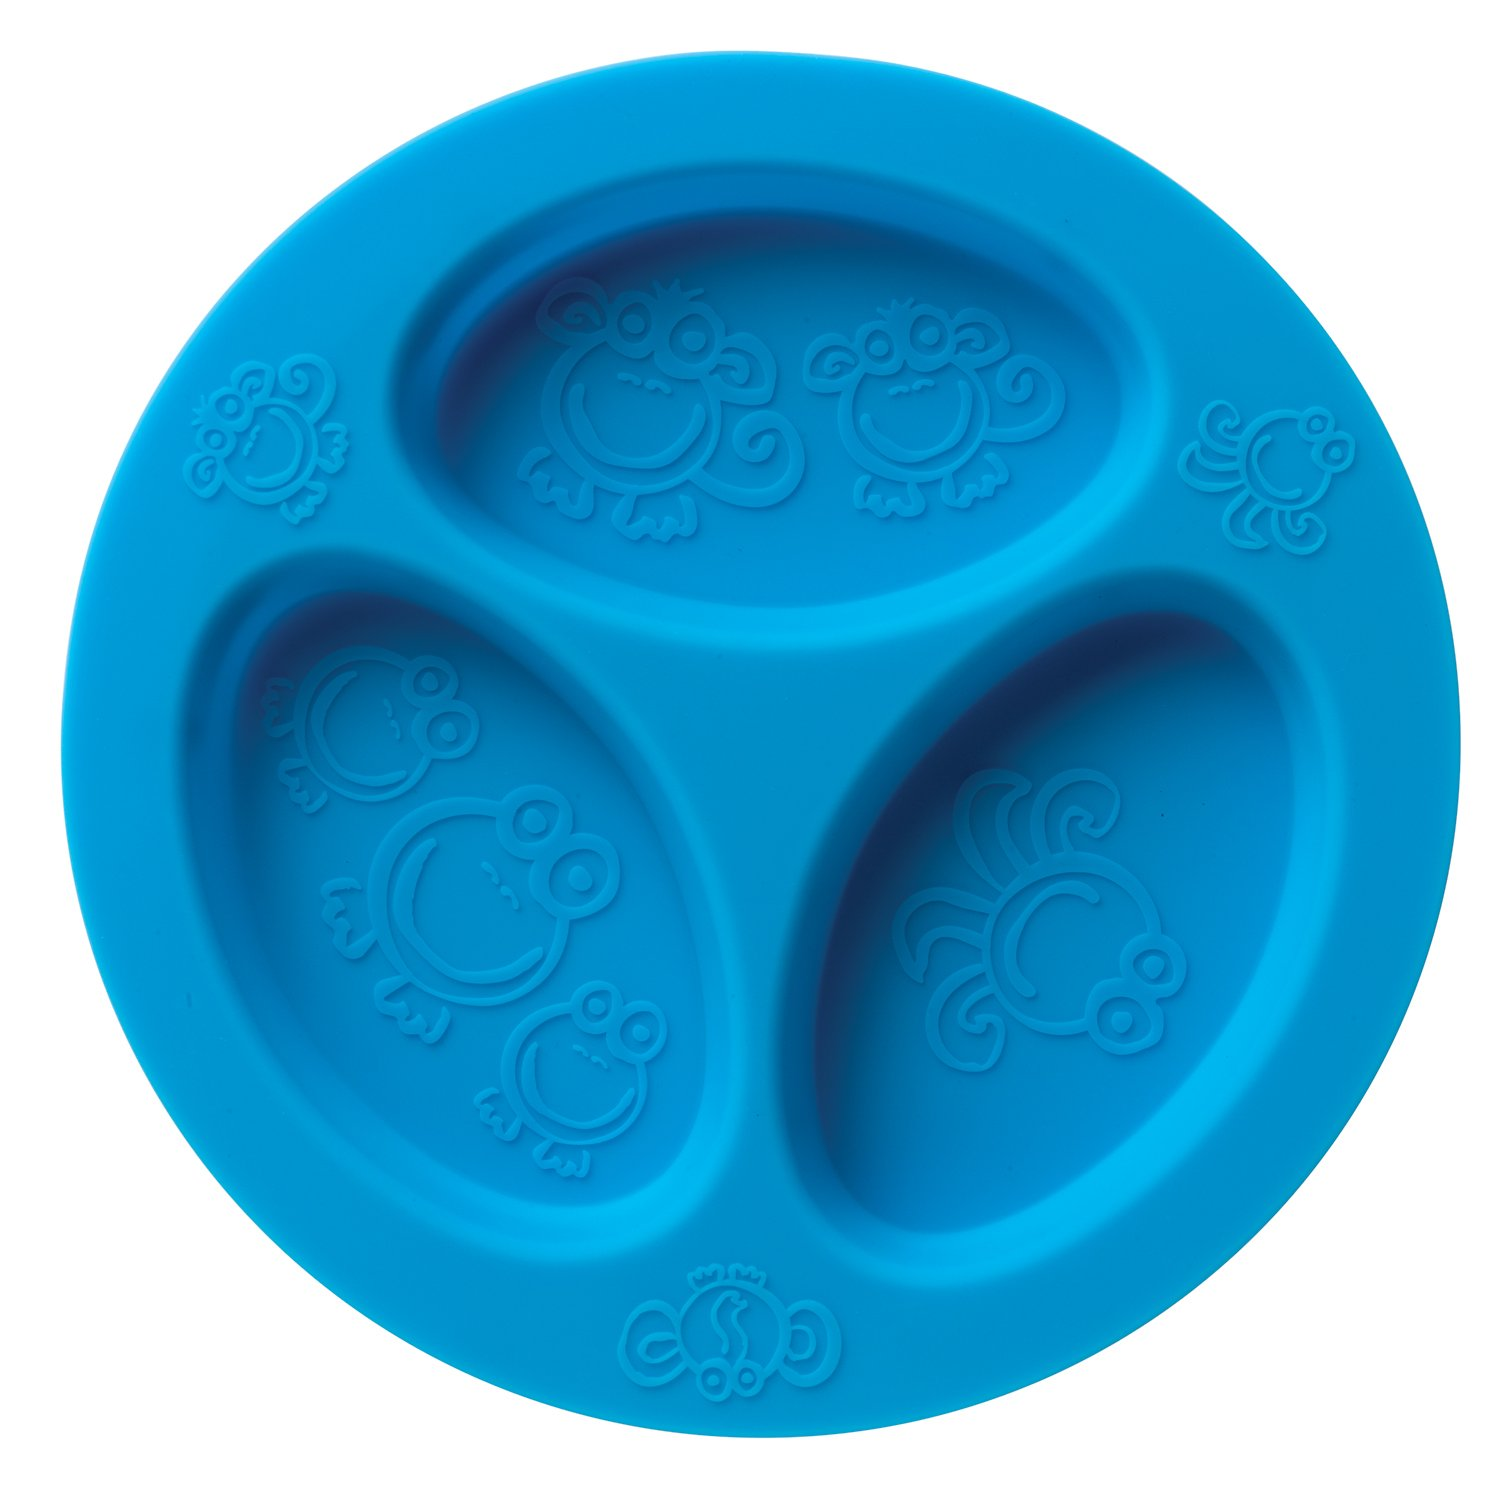 Silicone baby & toddler divided plate. Safe for Oven, Microwave, Dishwasher, Freezer and Boil SAFE! Blue